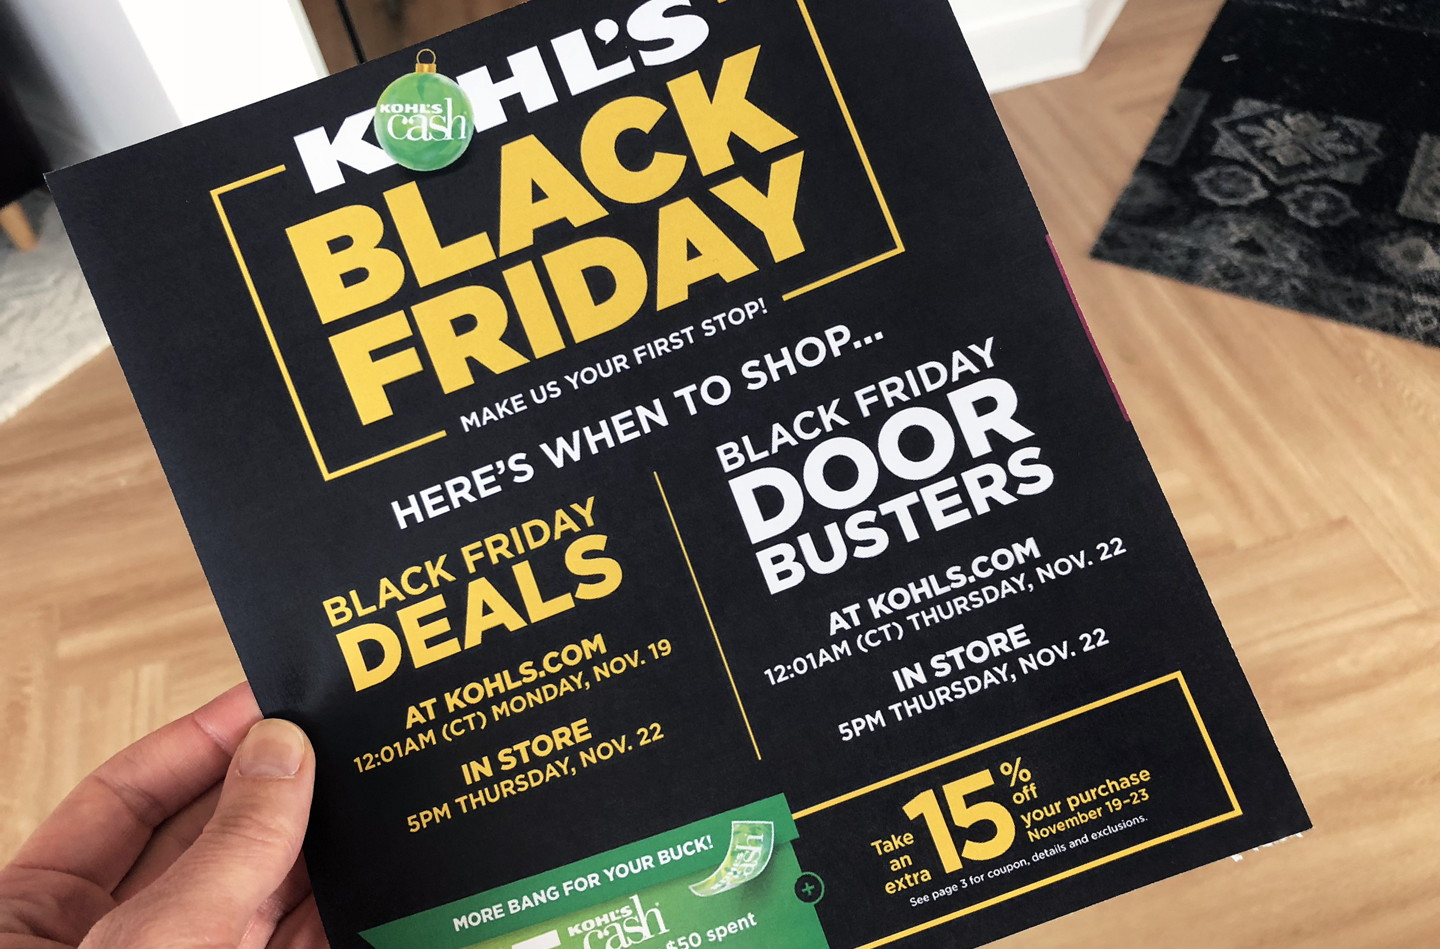 Top 20 Kohl's Black Friday Deals for 2018! - The Krazy